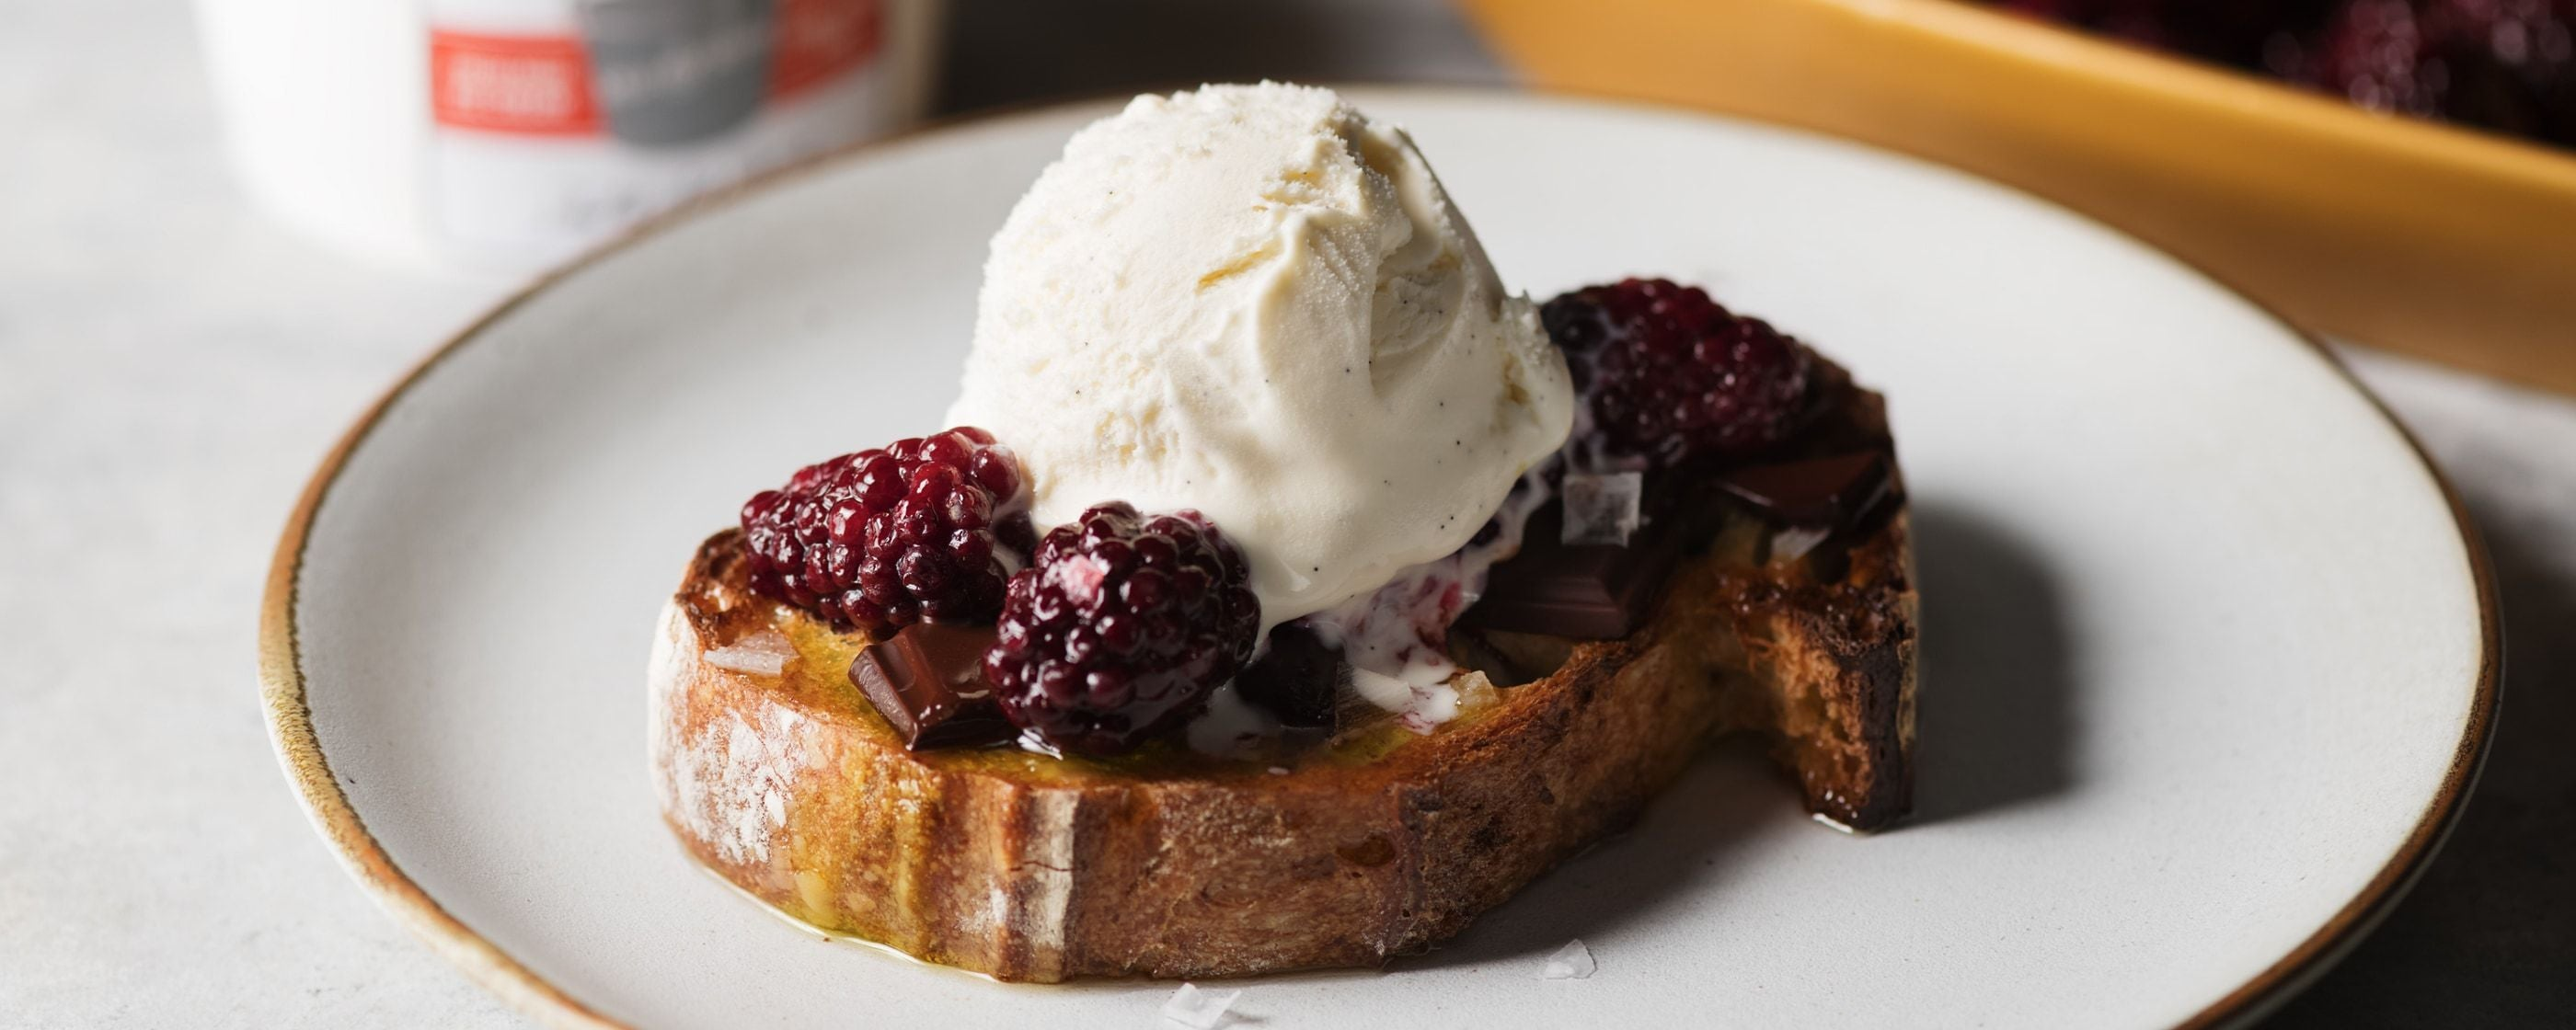 Ice Cream on Toast with<br> Roasted Berries, Chocolate, and Olive Oil